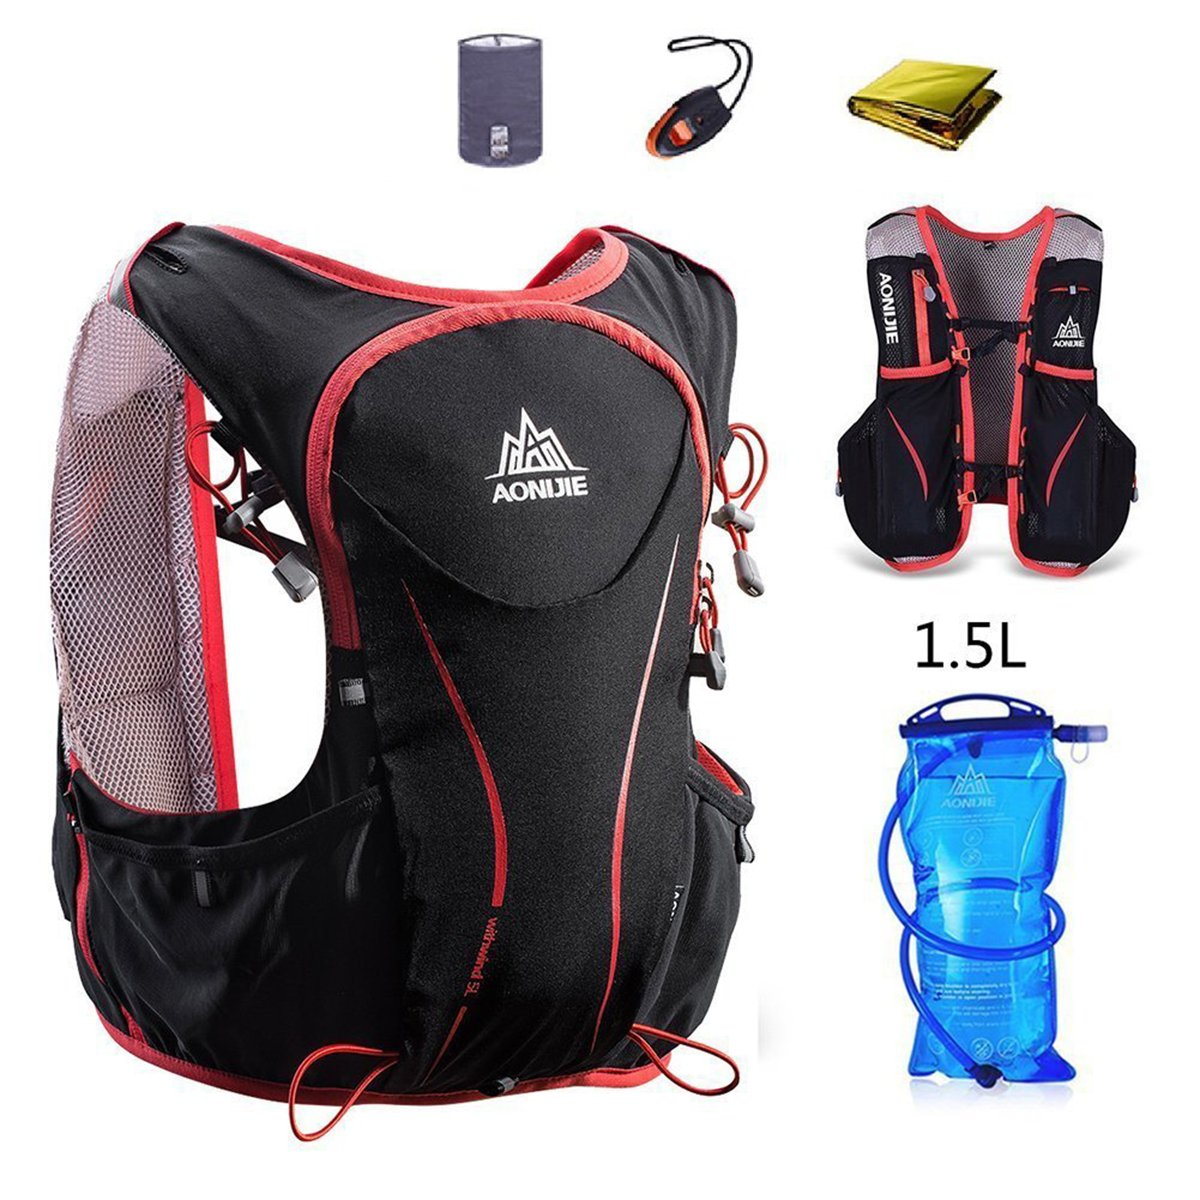 AONIJIE Hydration Pack Backpack Deluxe Lightweight 5L Outdoors Hydration Vest for Marathon Trail Running Race Hiking Camping Cycling (Black+1.5L Water Bladder, S/M)